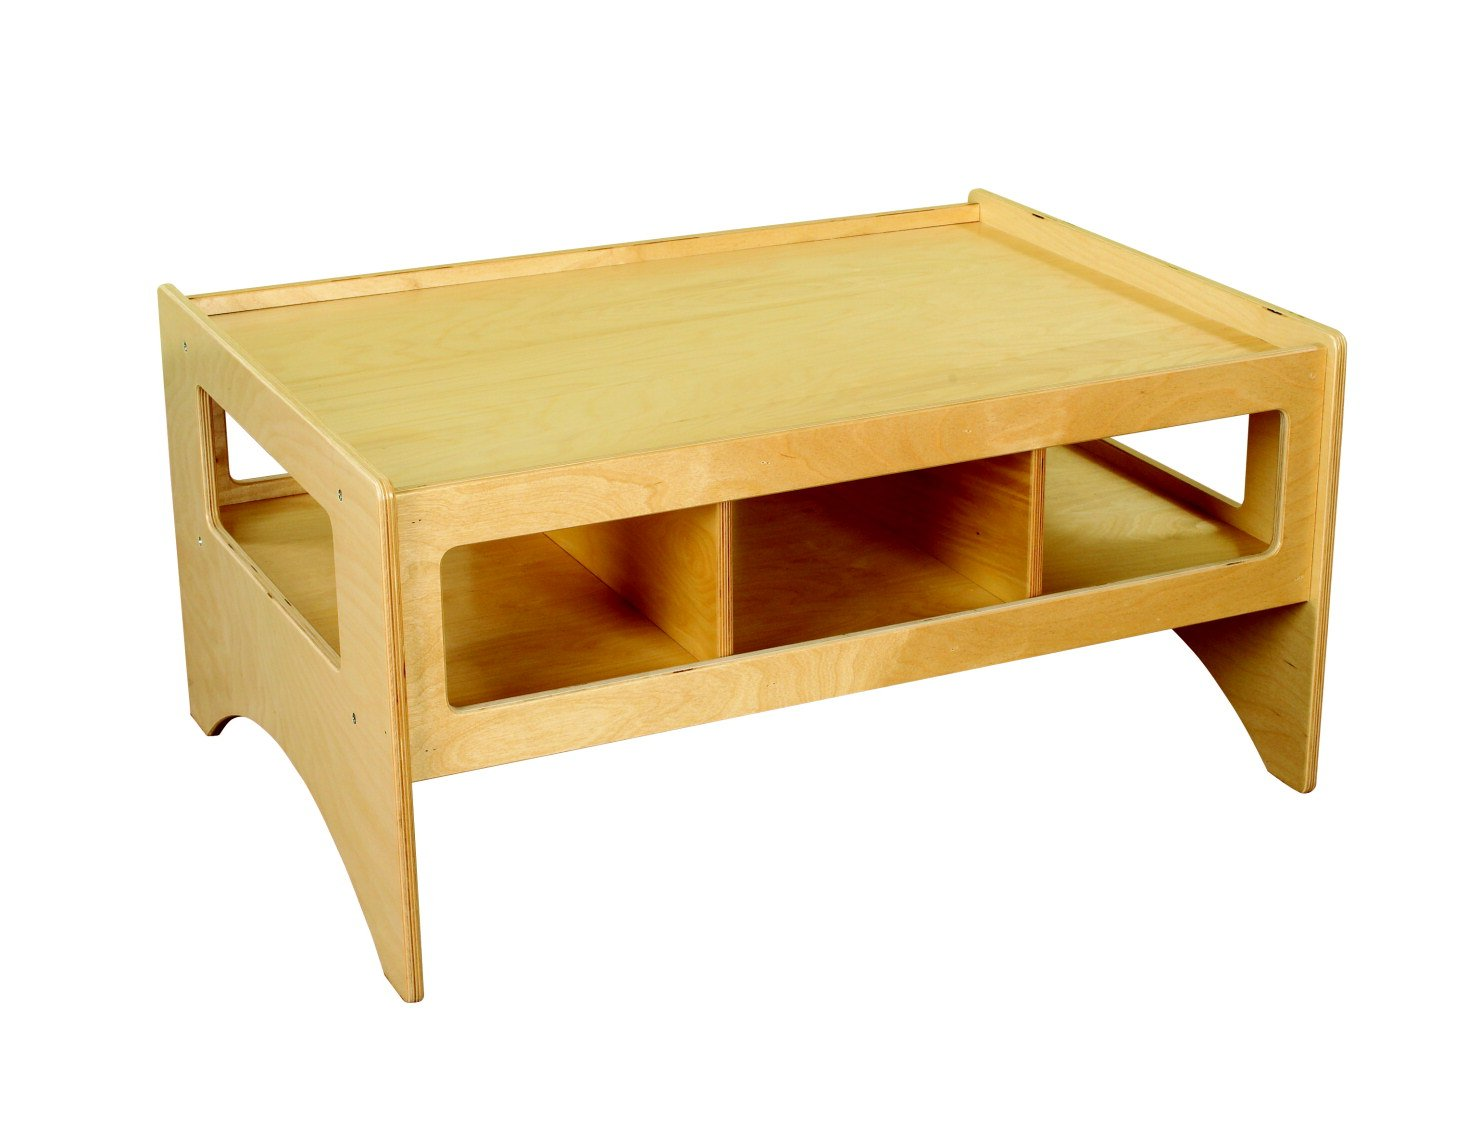 Childcraft 1464164 Multi-Purpose Play Table, Wood, 36'' x 26'' x 18'', Natural Wood Tone by Childcraft